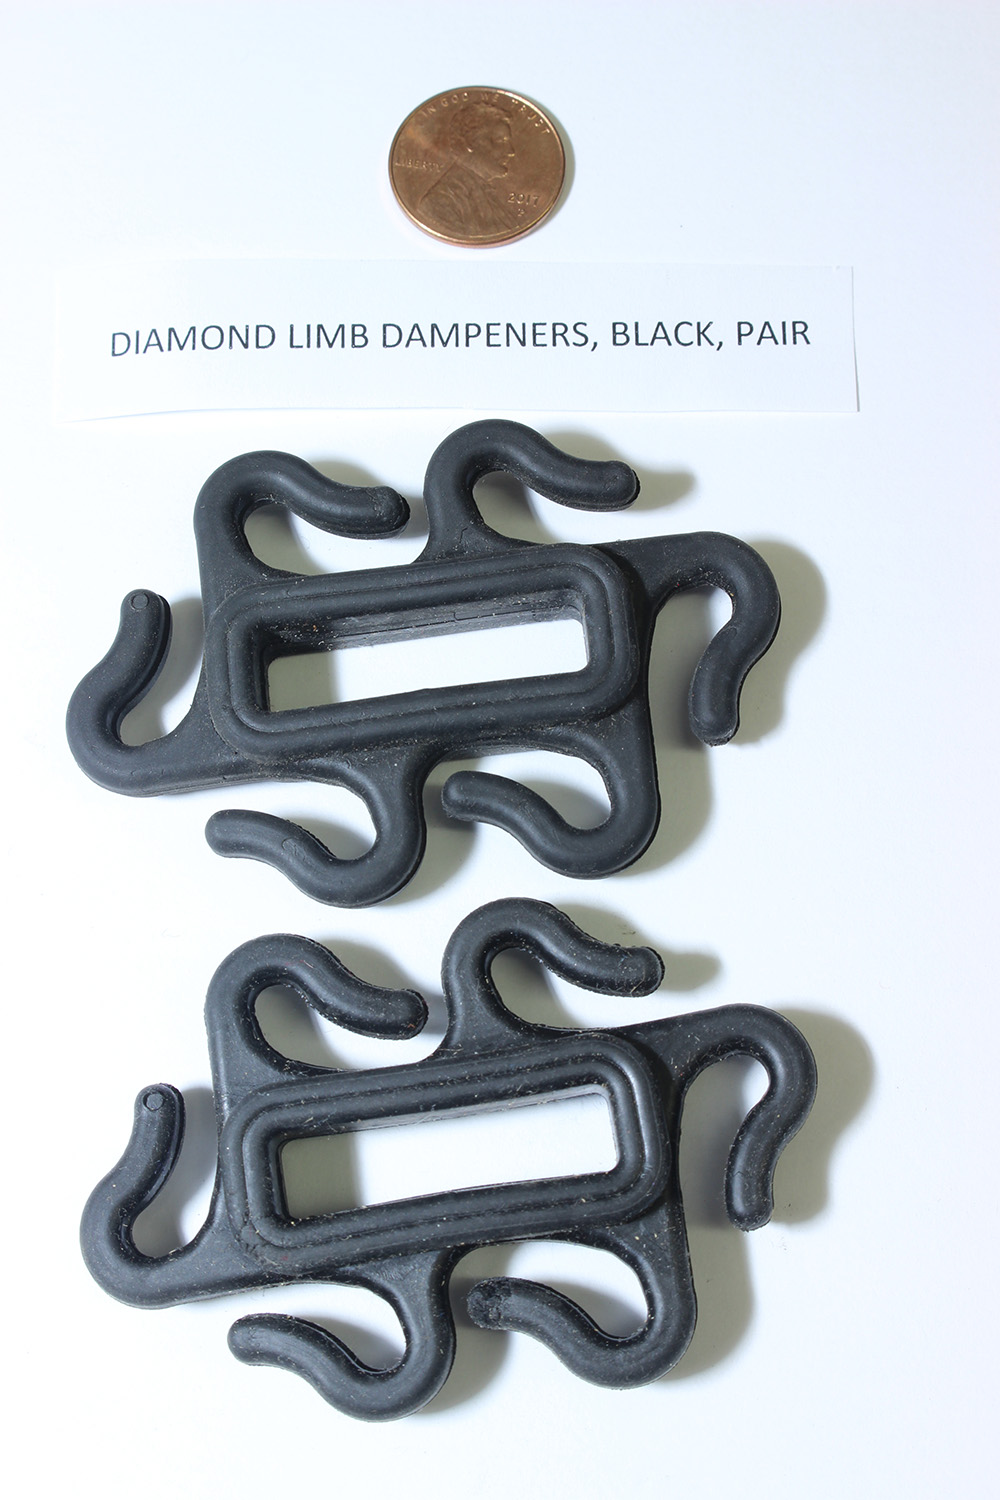 compound bow replacement limb dampeners used on older Diamond bows photo